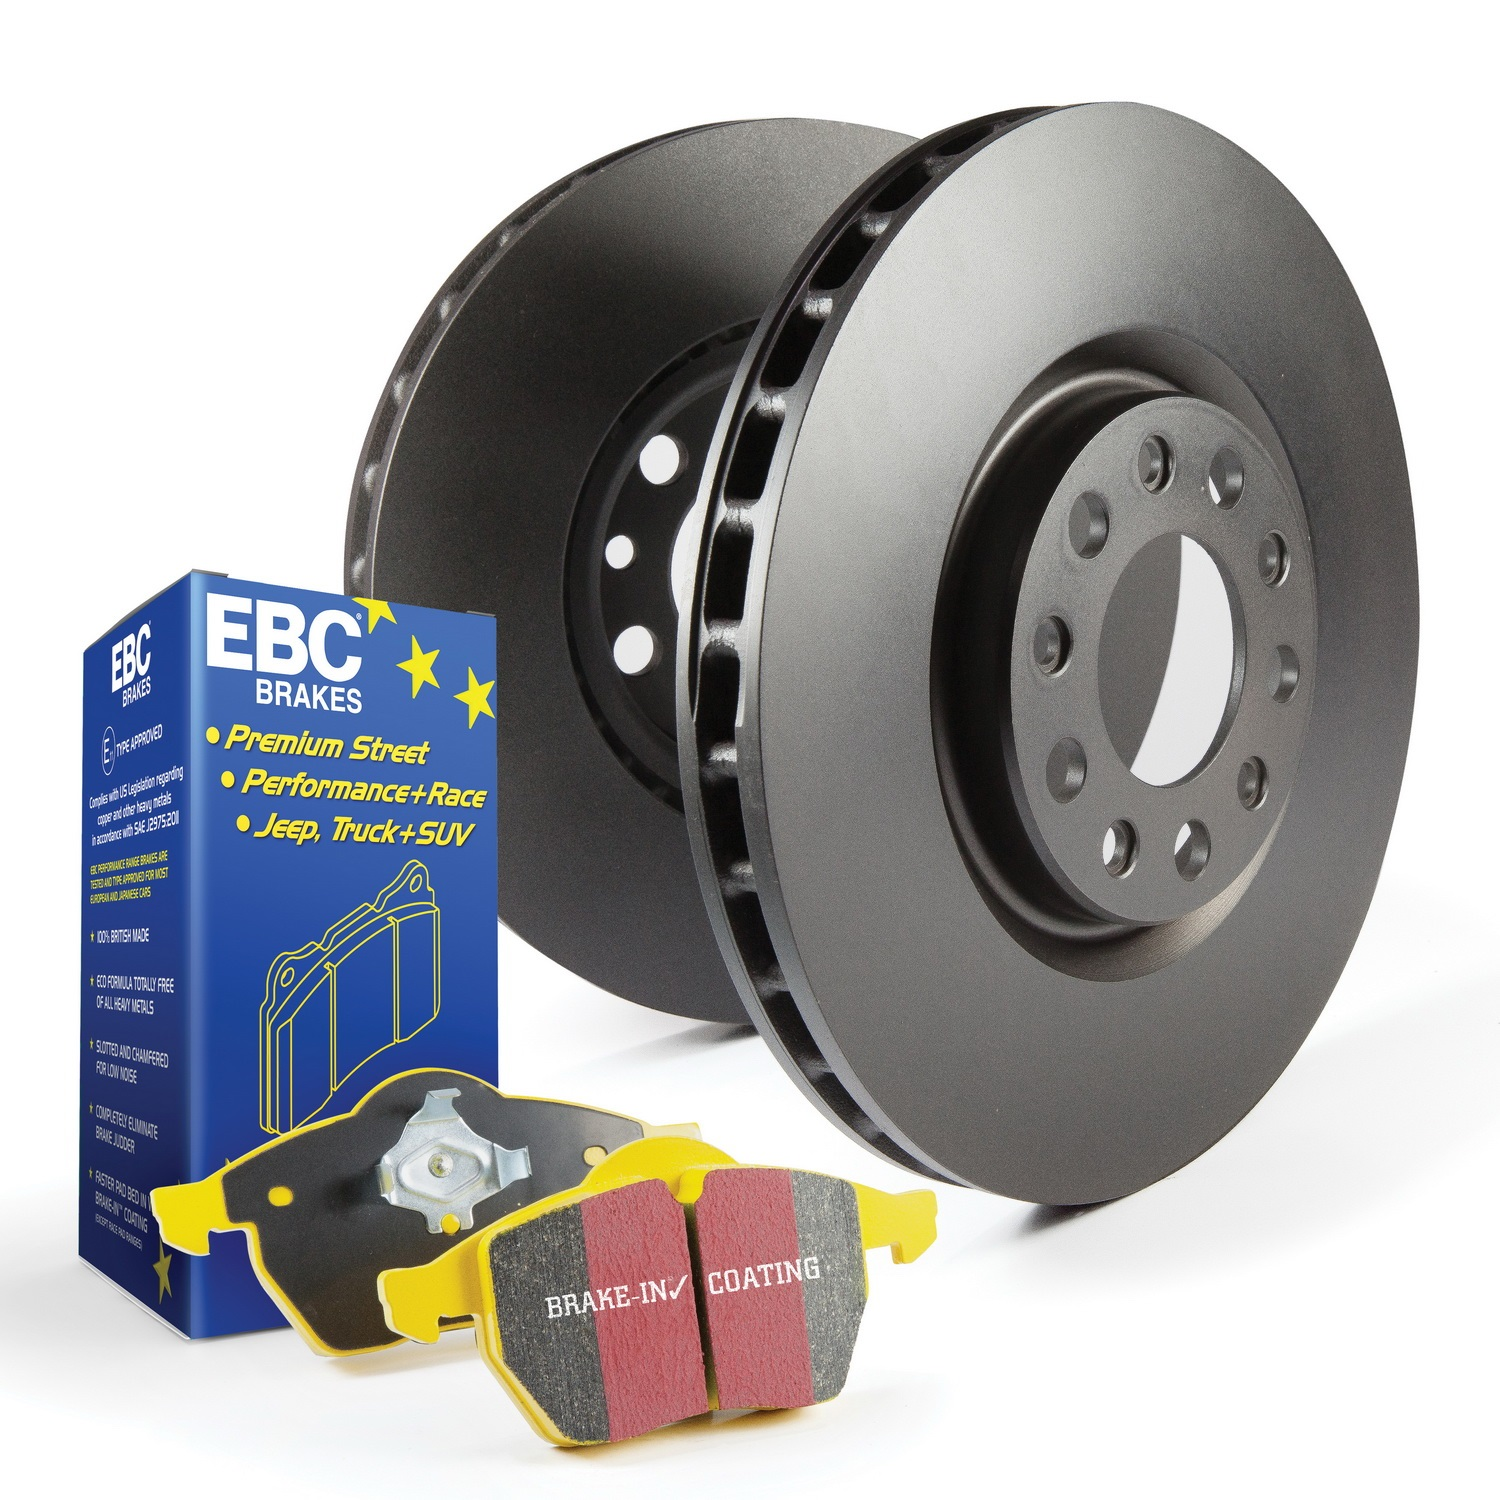 EBC Brakes S13KR1419 - Disc Brake Pad and Rotor Kit